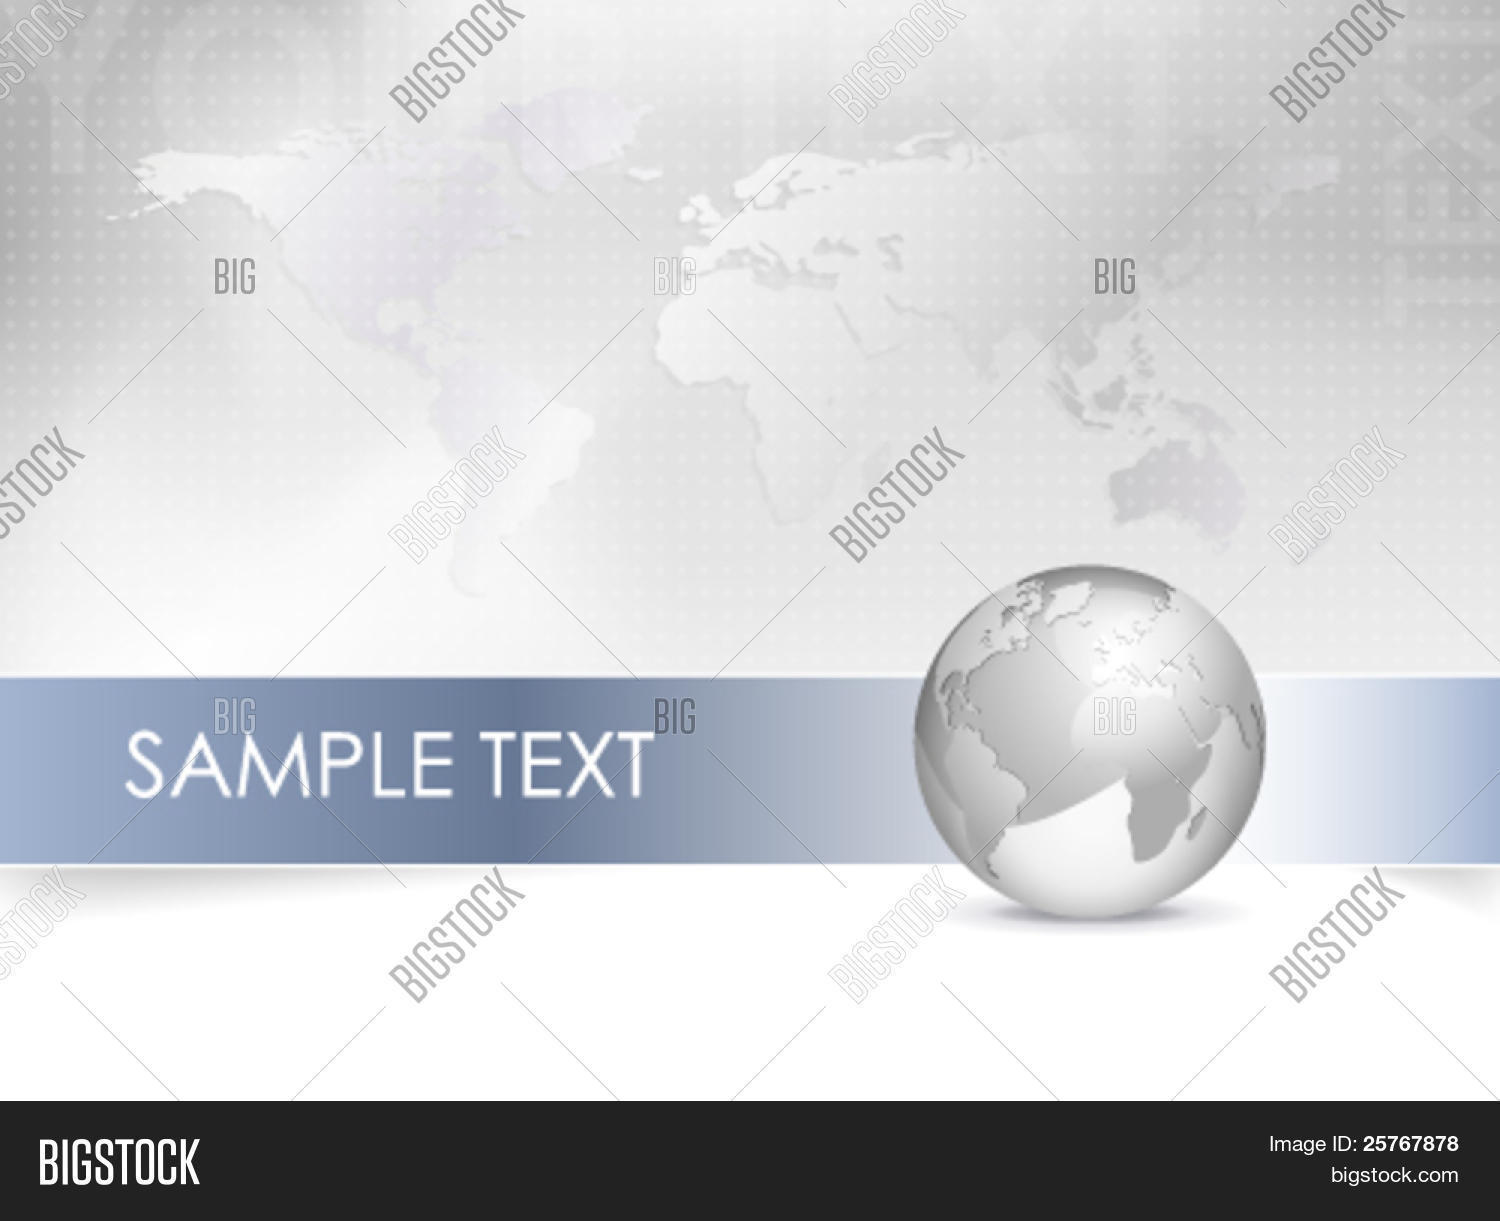 Business map world vector photo free trial bigstock business map world map globe abstract grey background design with blue banner gumiabroncs Gallery